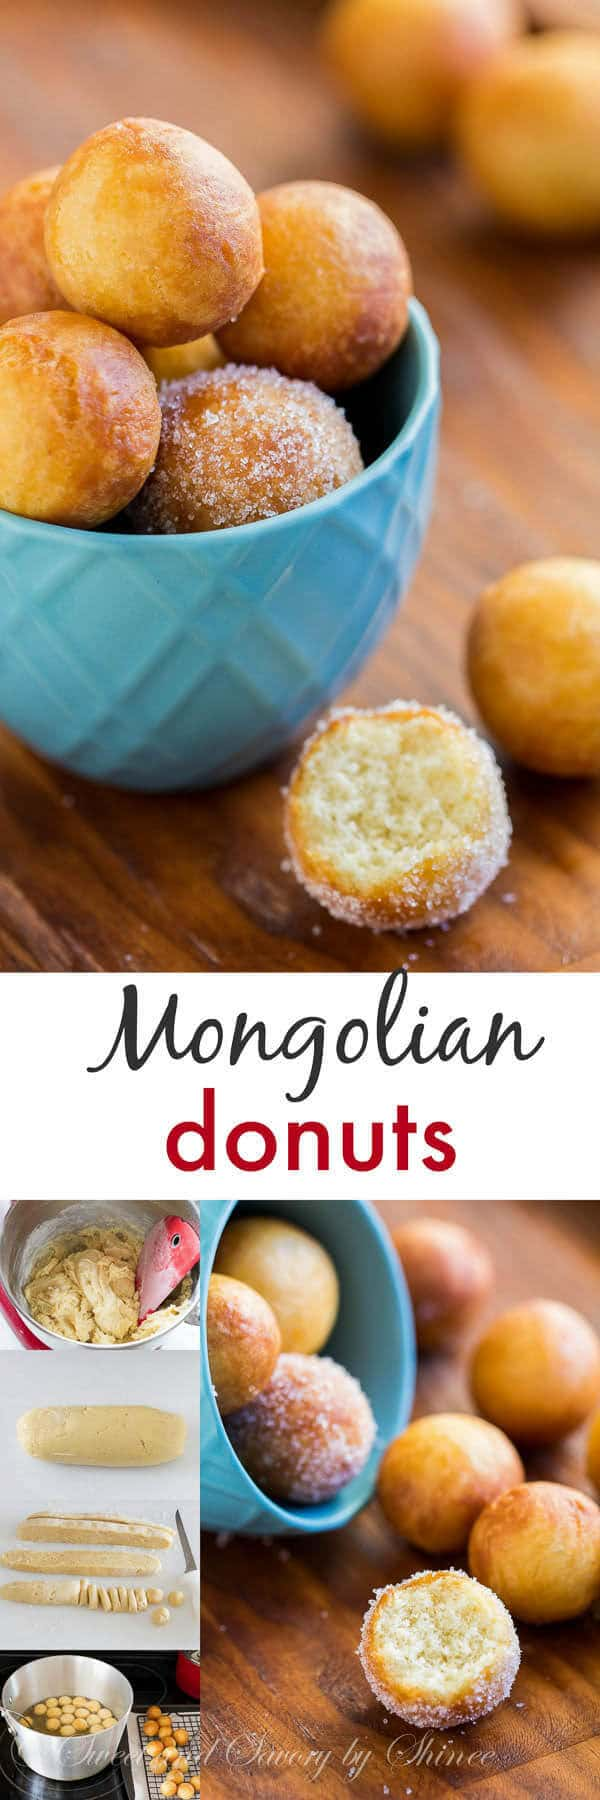 Crispy, soft and incredibly addicting, these little donut holes are so easy to make and you'll get lots to share!